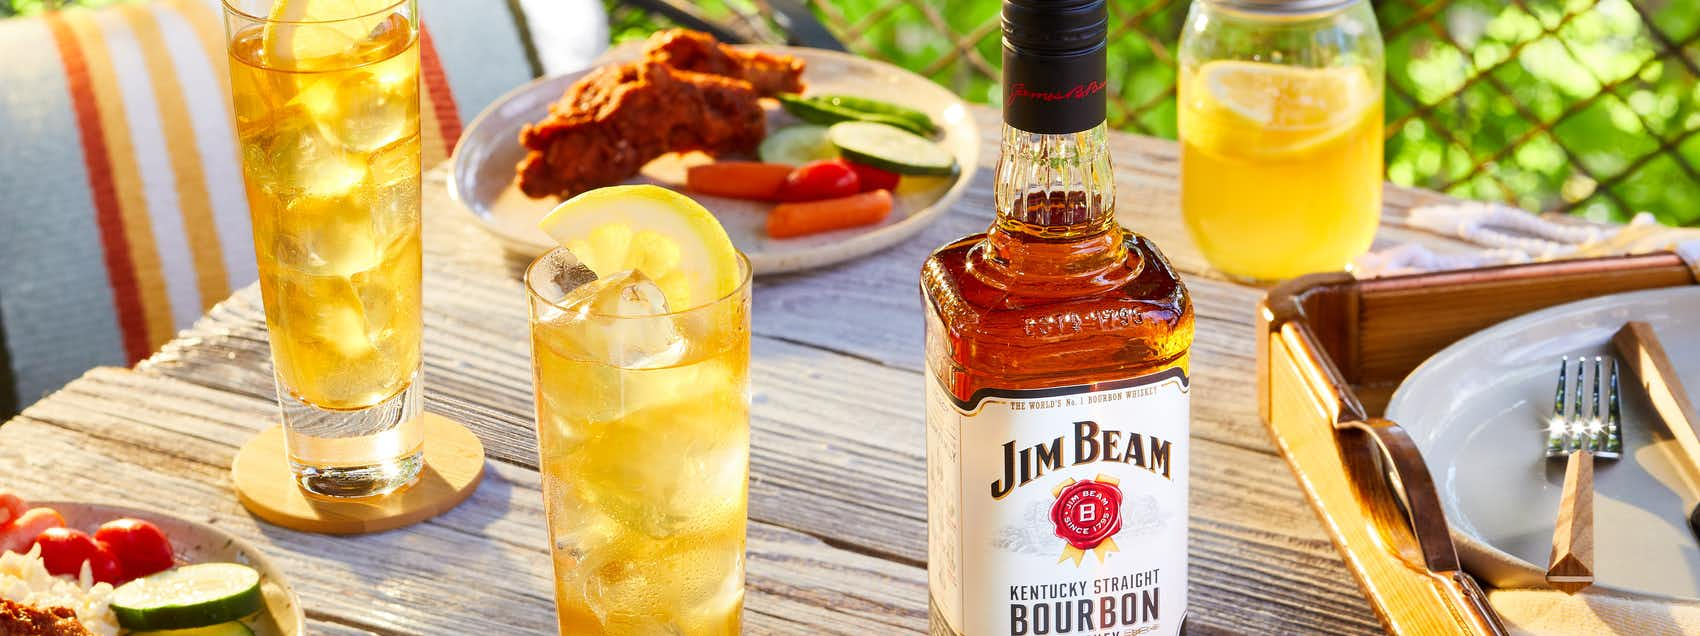 Jim Beam Kentucky Sweet Tea